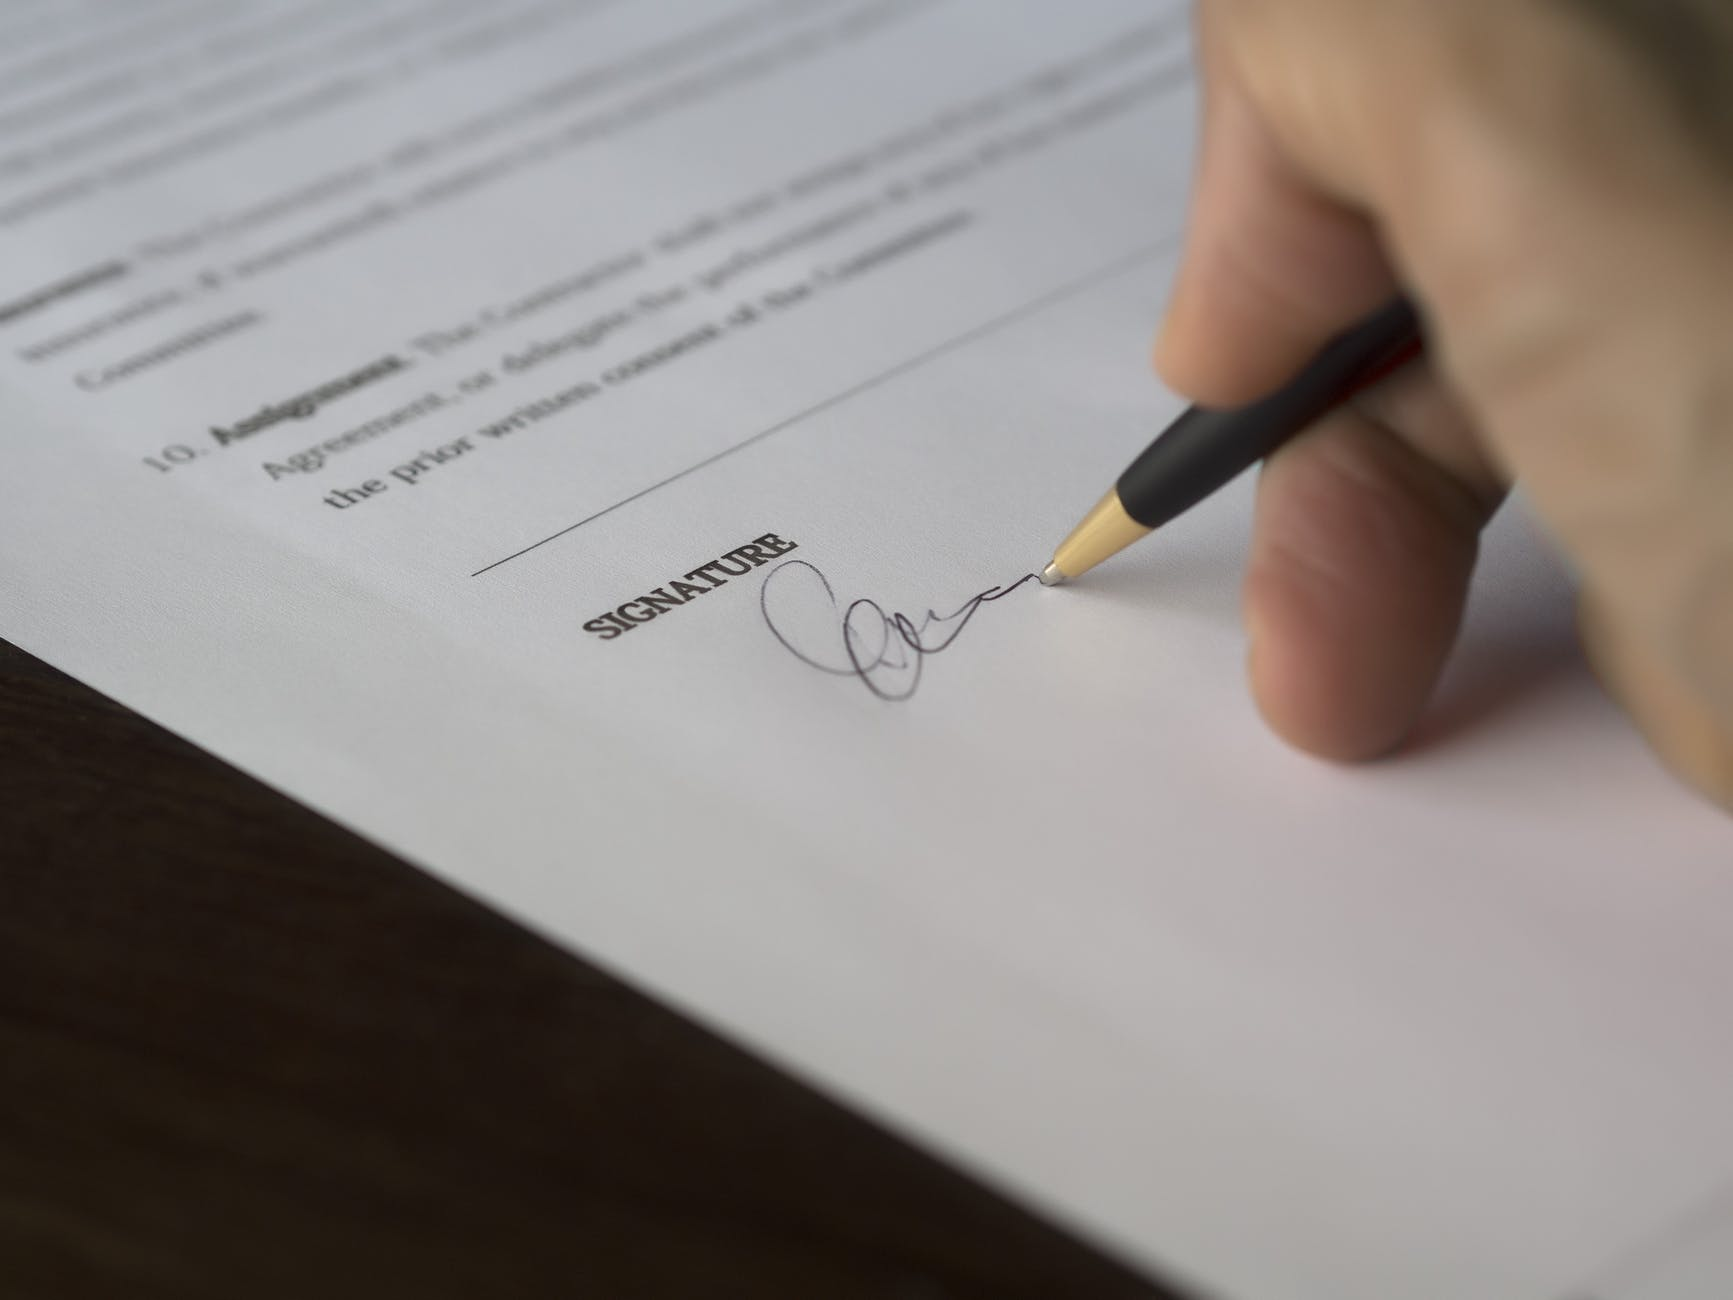 There are certain personal details that mustn't be included in the documents